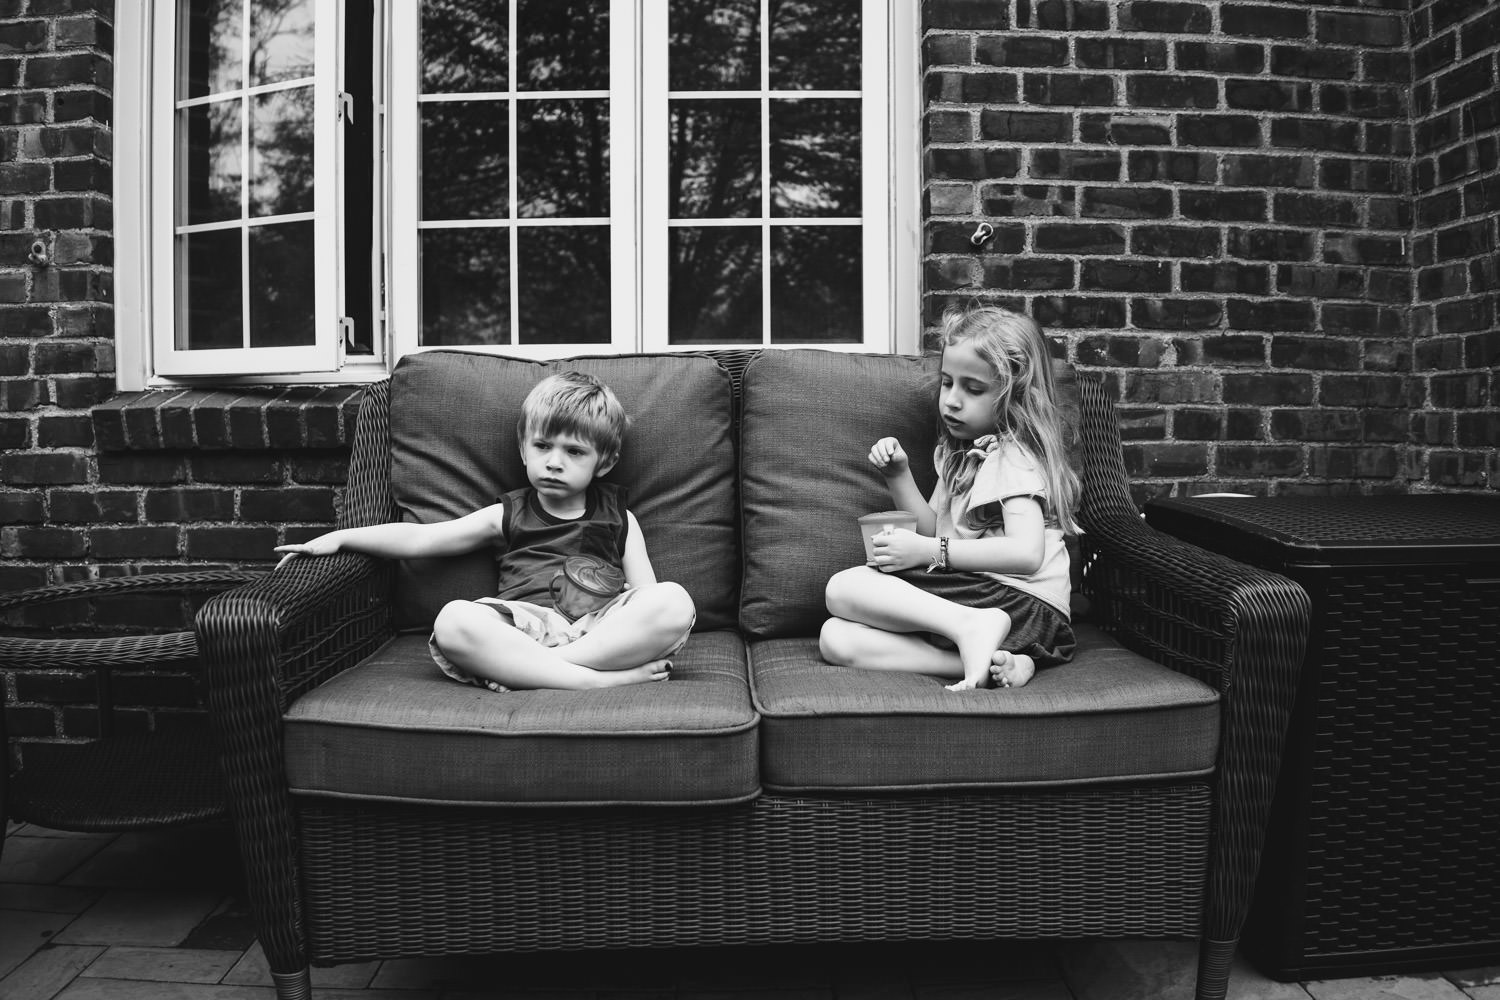 Two kids rest on a loveseat on a front porch.